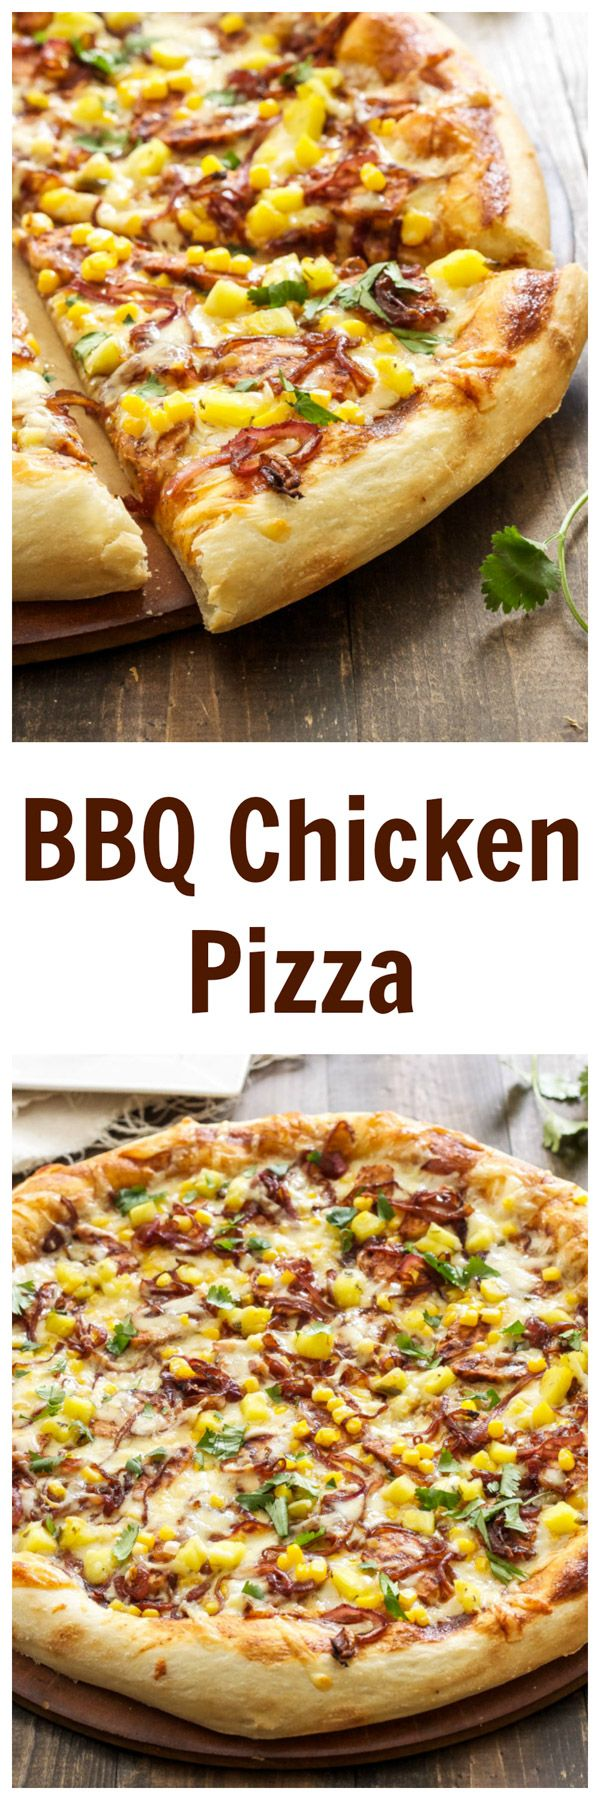 A delicious BBQ chicken pizza topped with caramelized onions, corn, pineapple, and cilantro!